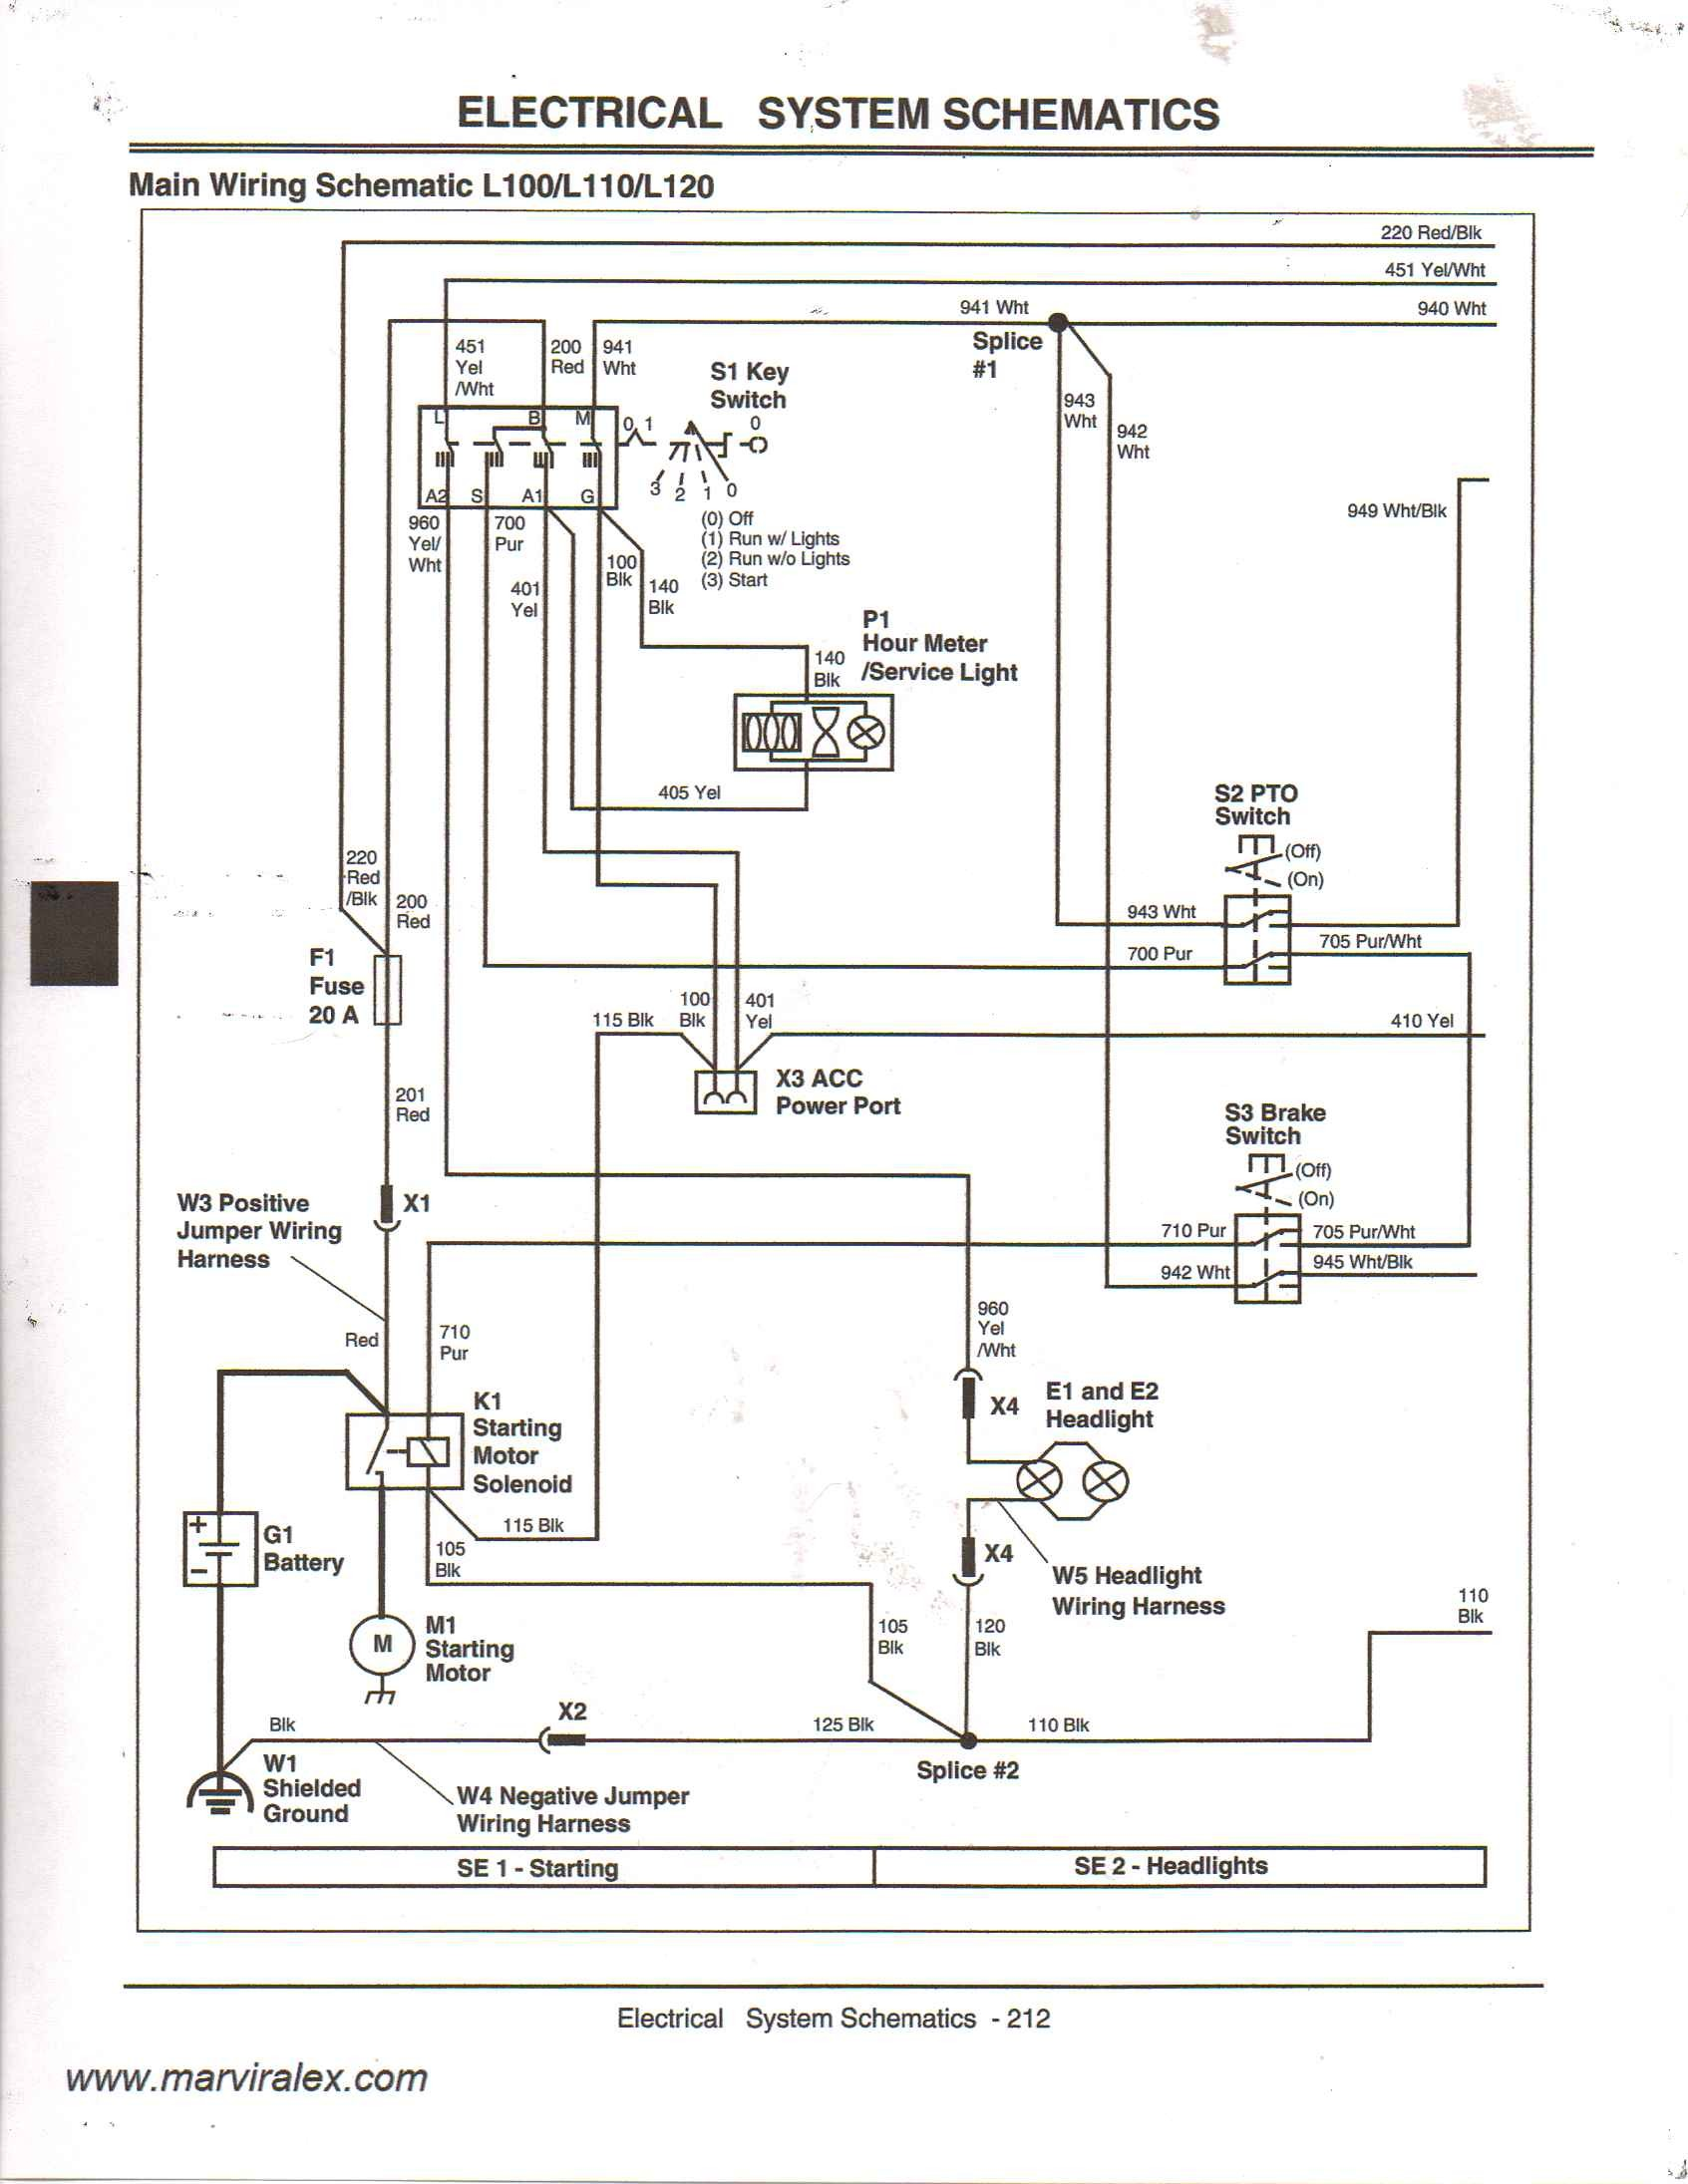 Jd 318 Lawn Tractor Wire Diagram Cb 4290] for John Deere 1050 Tractor Wiring Diagram Of Jd 318 Lawn Tractor Wire Diagram